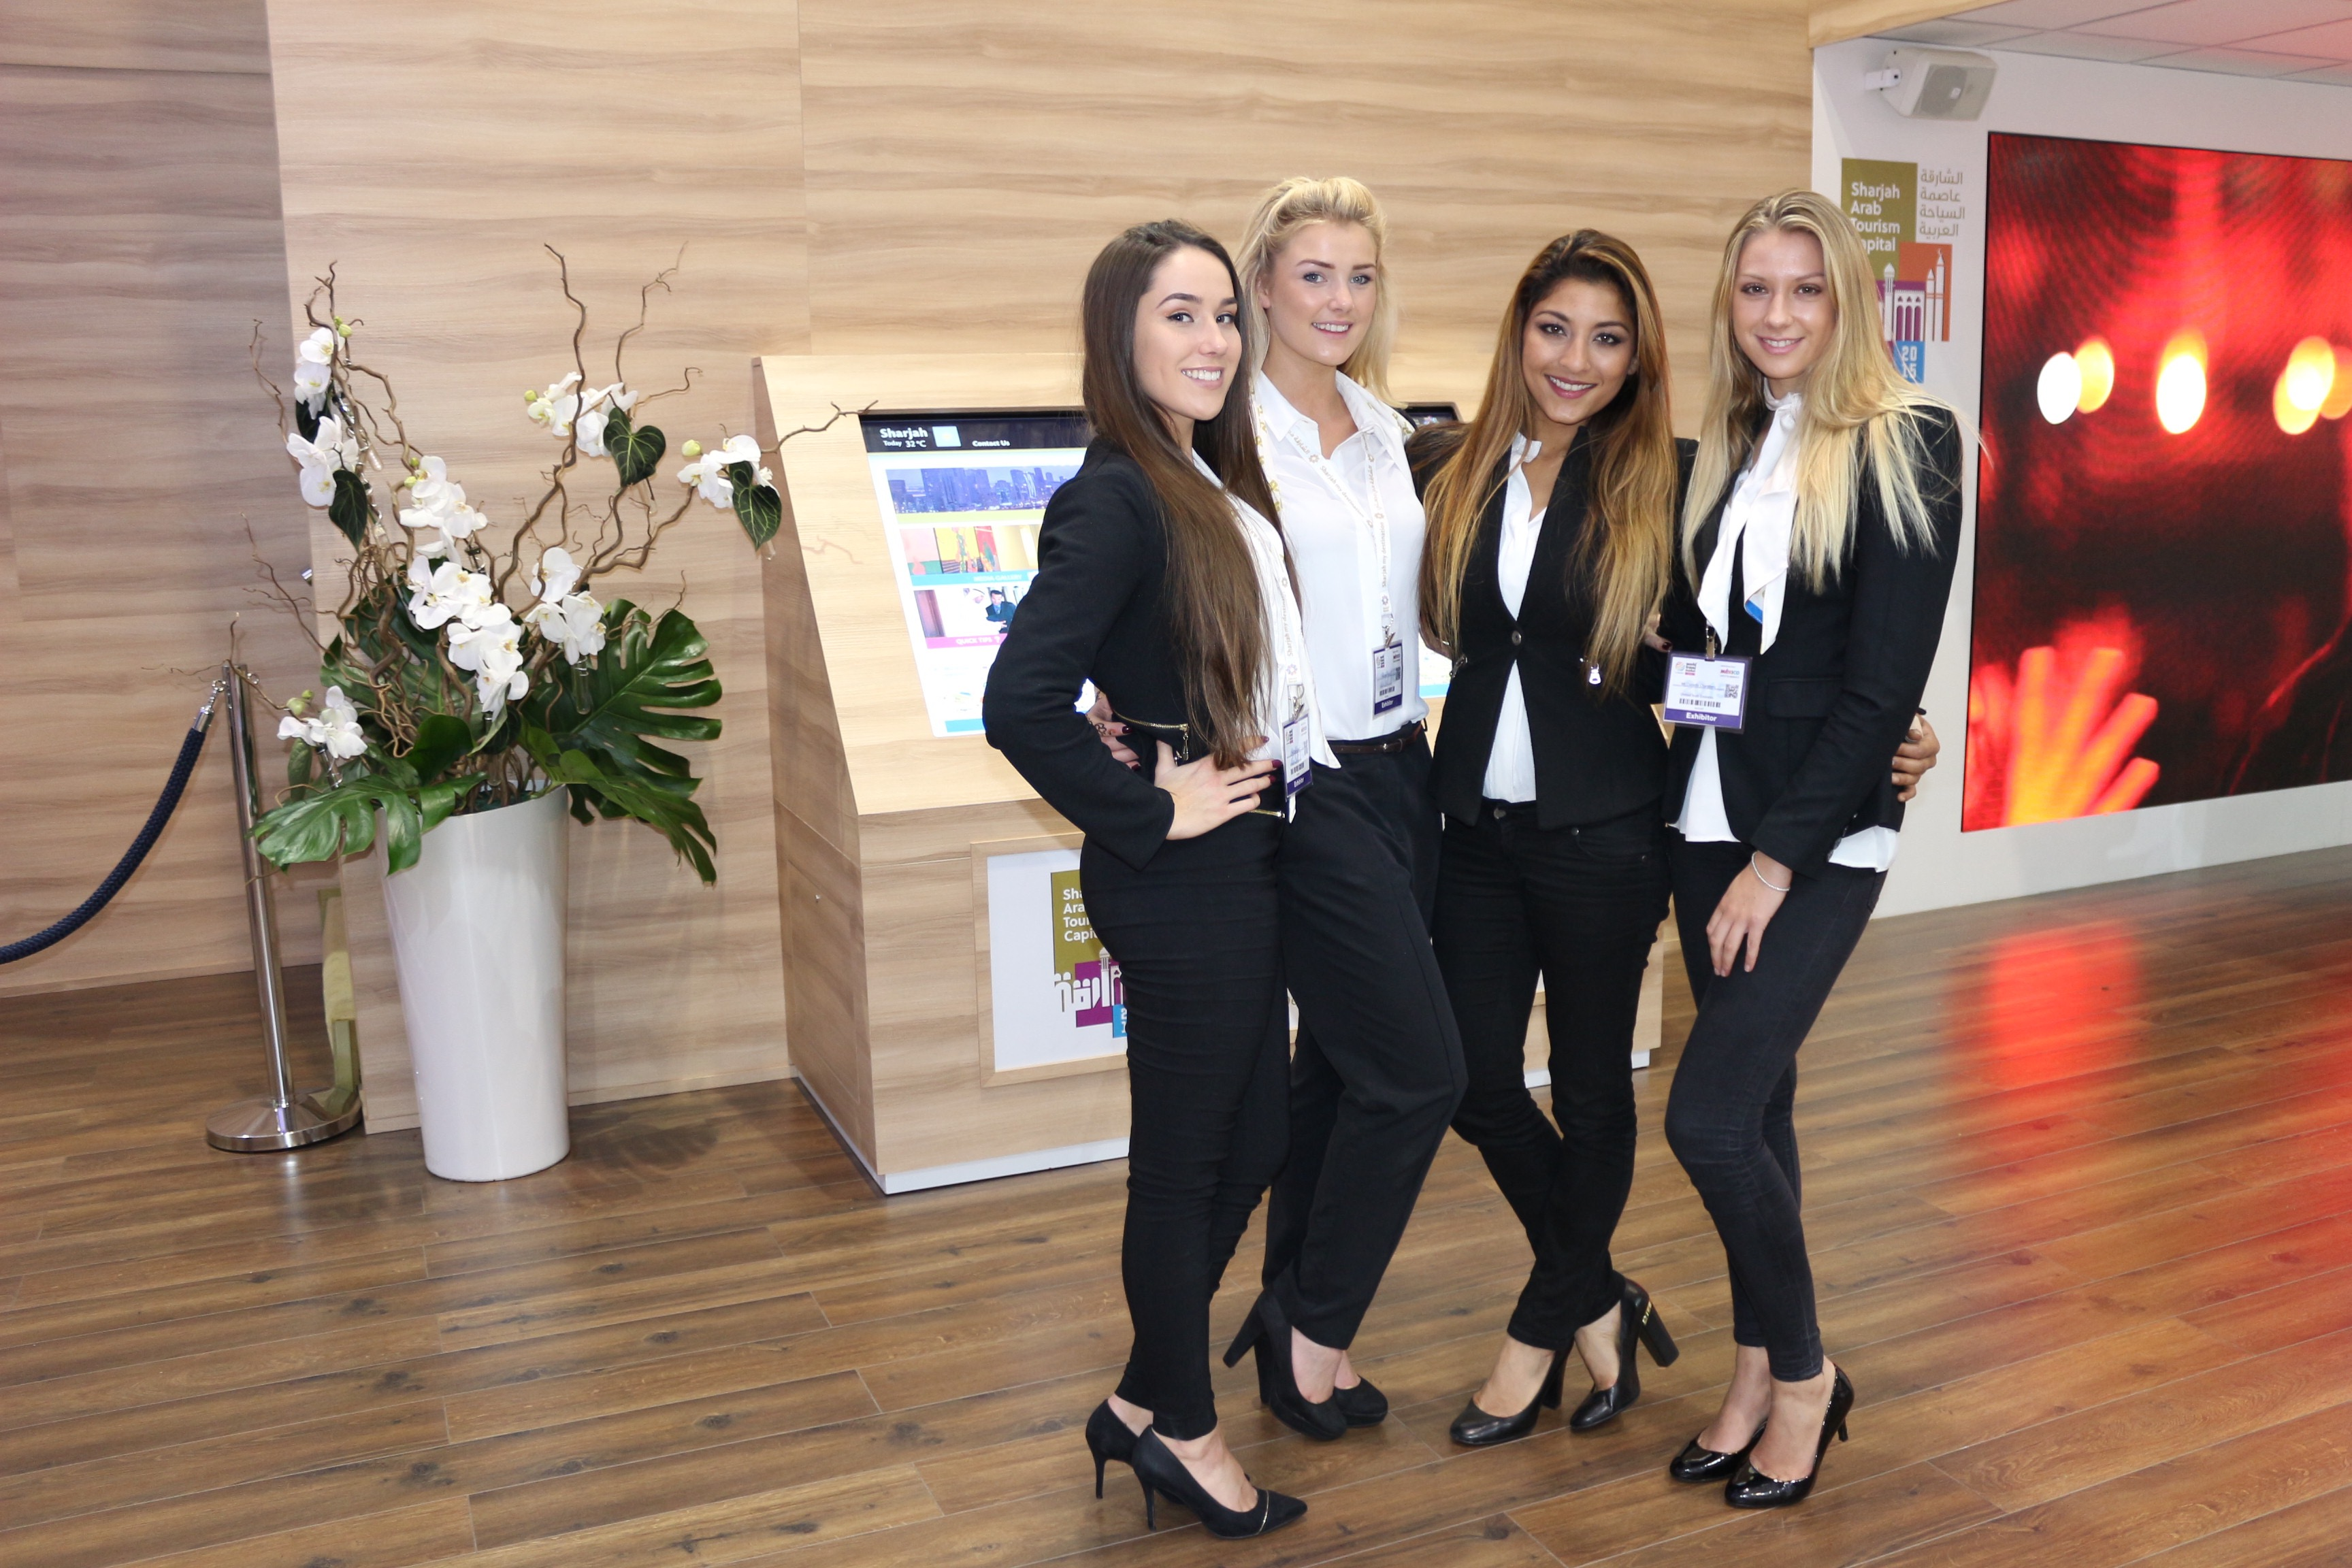 Exhibition Stand Hire Edinburgh : Exhibition stand hostesses girls limited